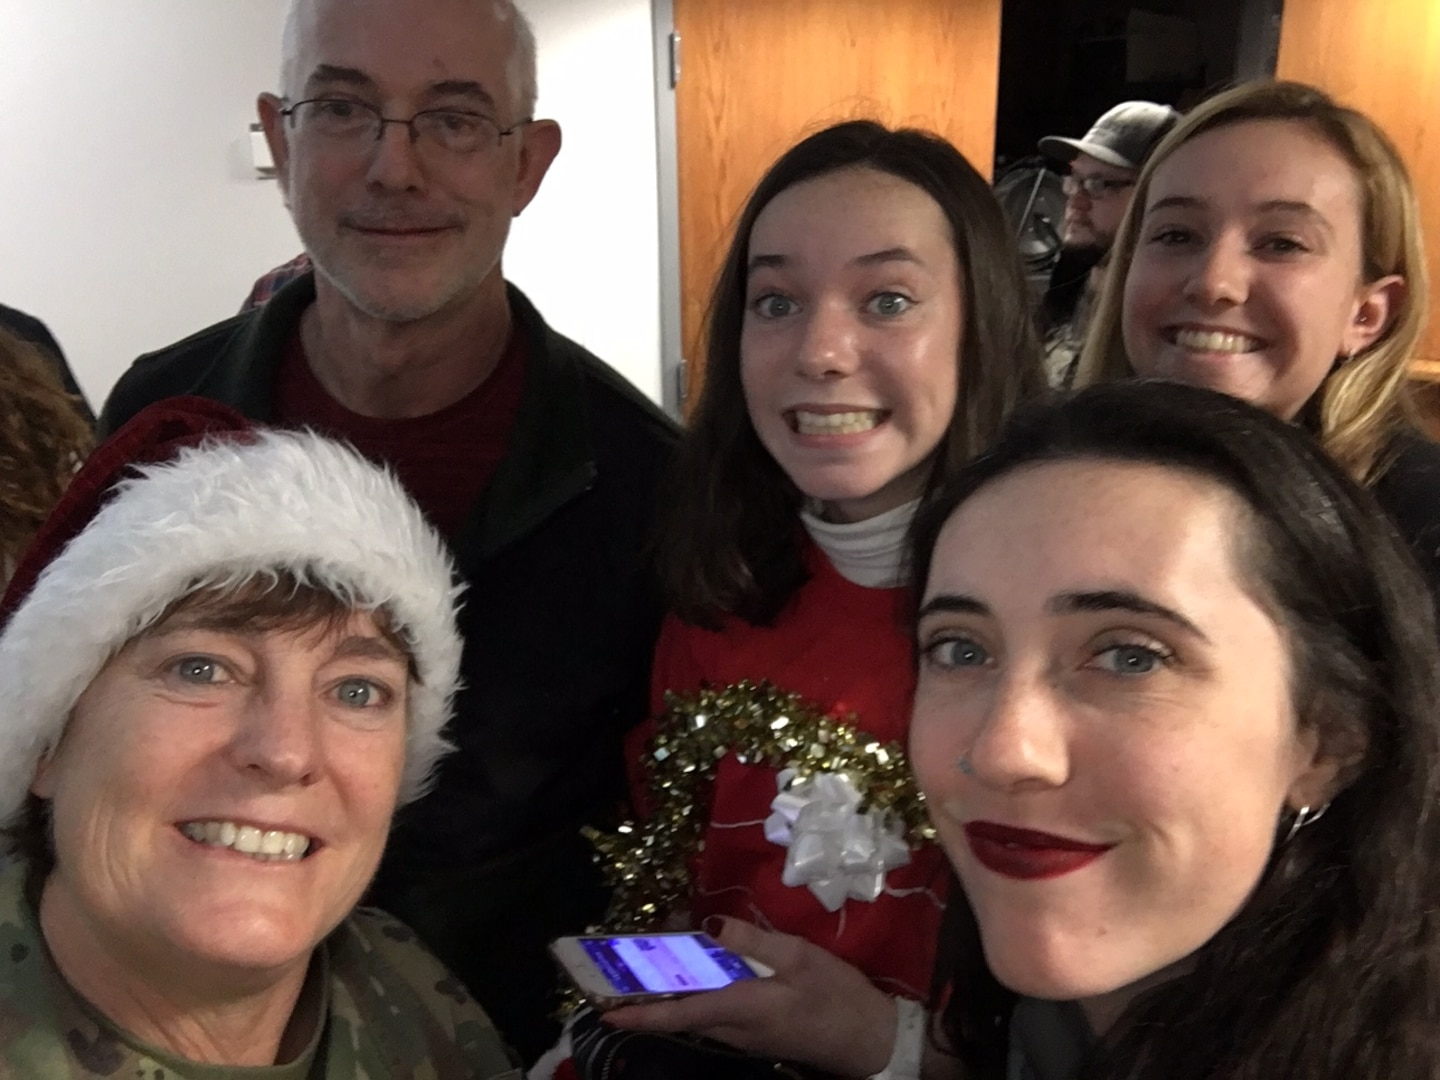 Brig. Gen. Michelle Rose (left) poses with her family during the 2019 holiday season.